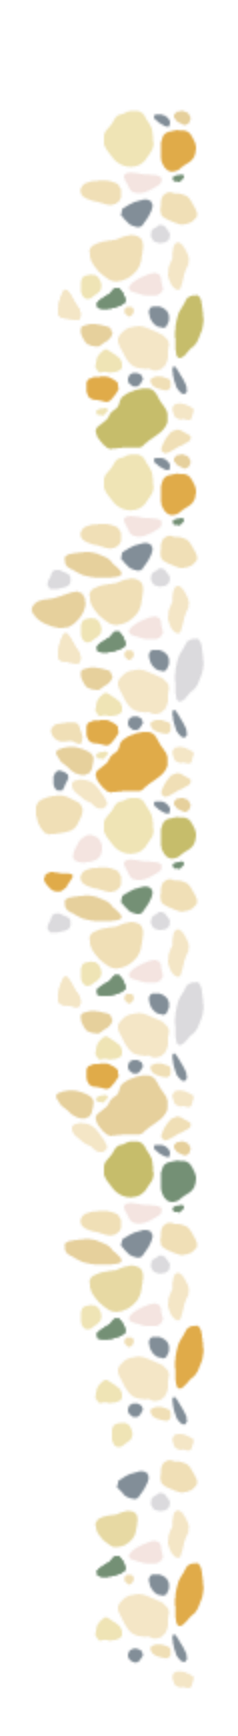 Pebble graphic.